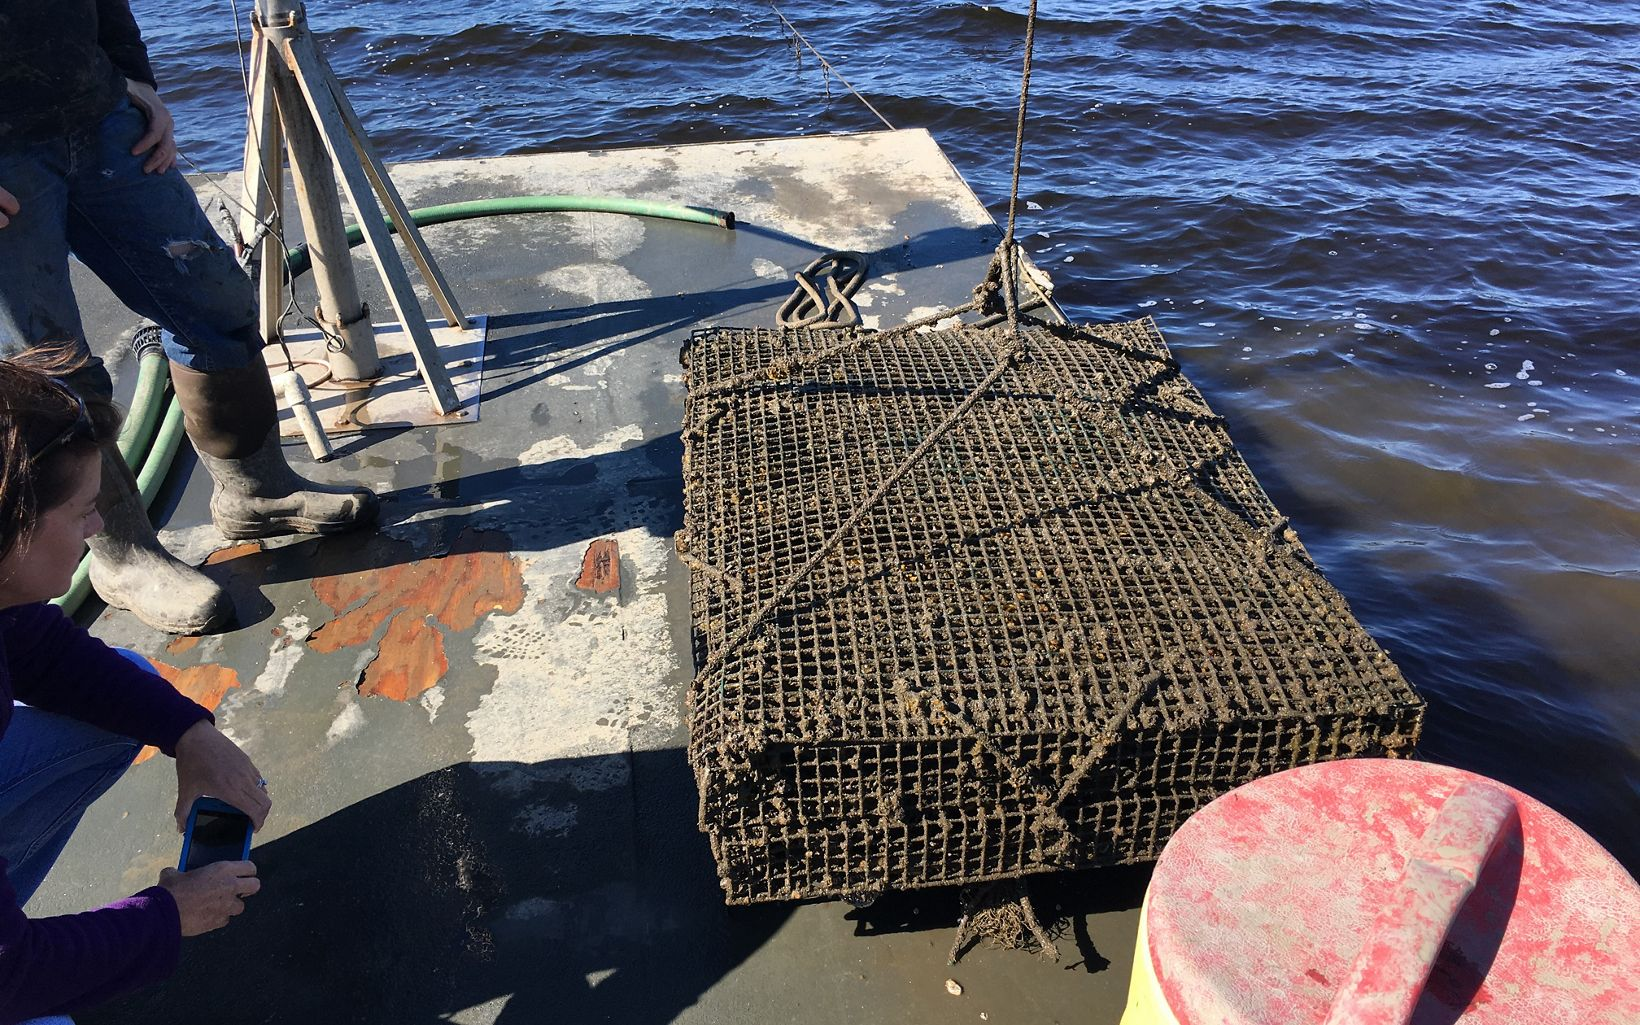 These oyster cages rest on the bottom of the river or bay.